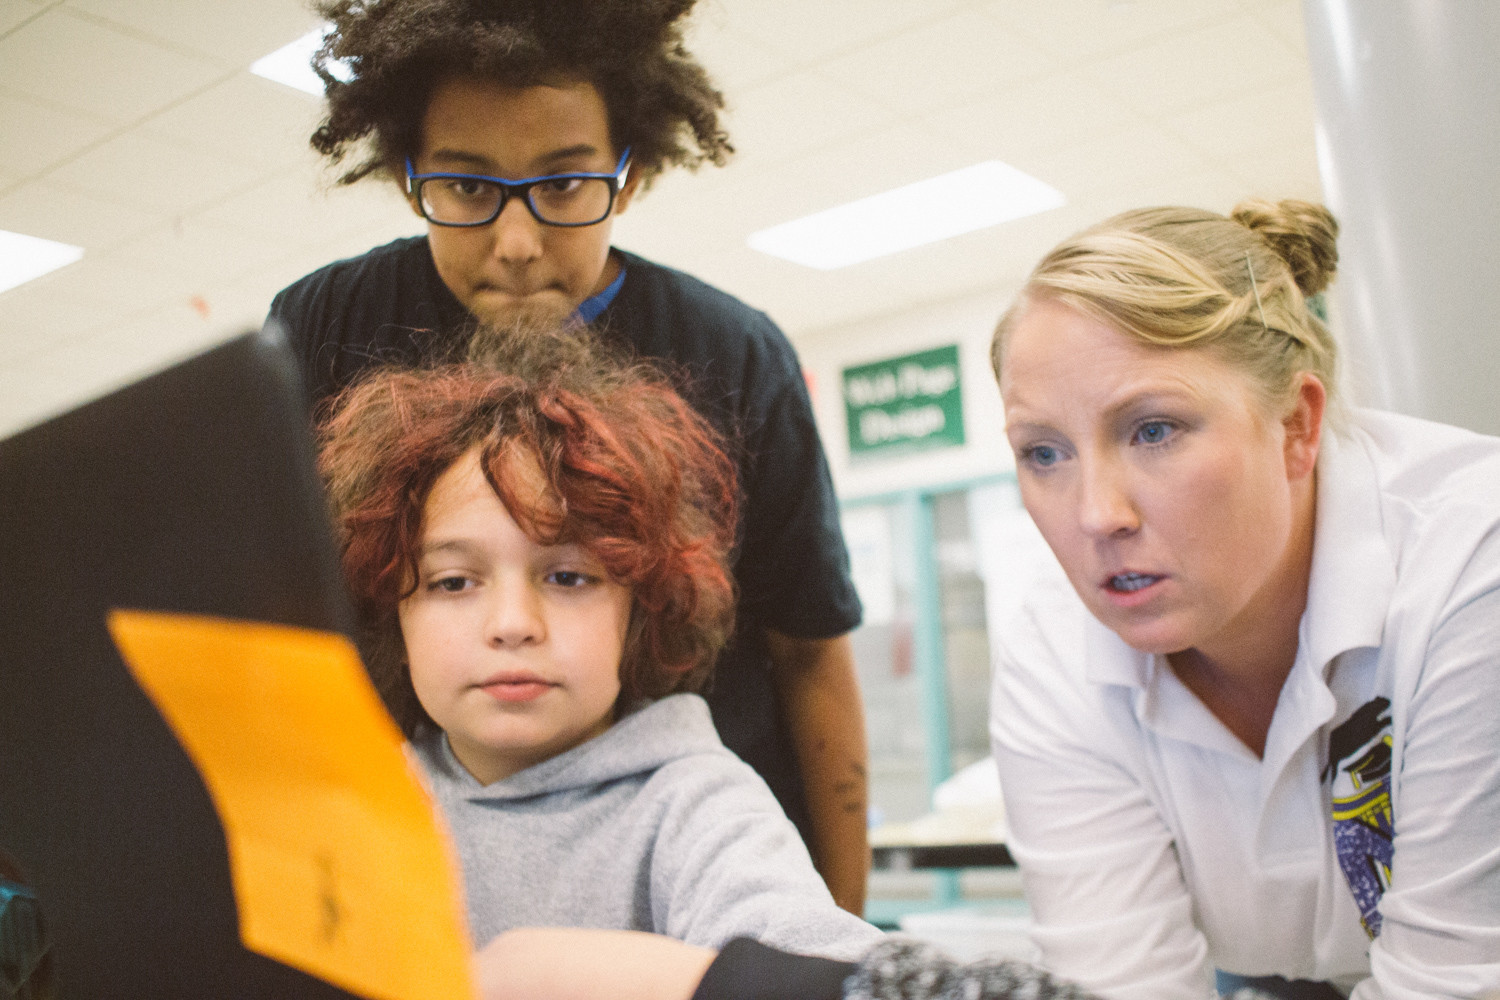 Otis Samb, 11, and Max Rossiter, 11, look on as computer science teacher Beth Colavito  evaluates their game 'Pollinators vs. People.'